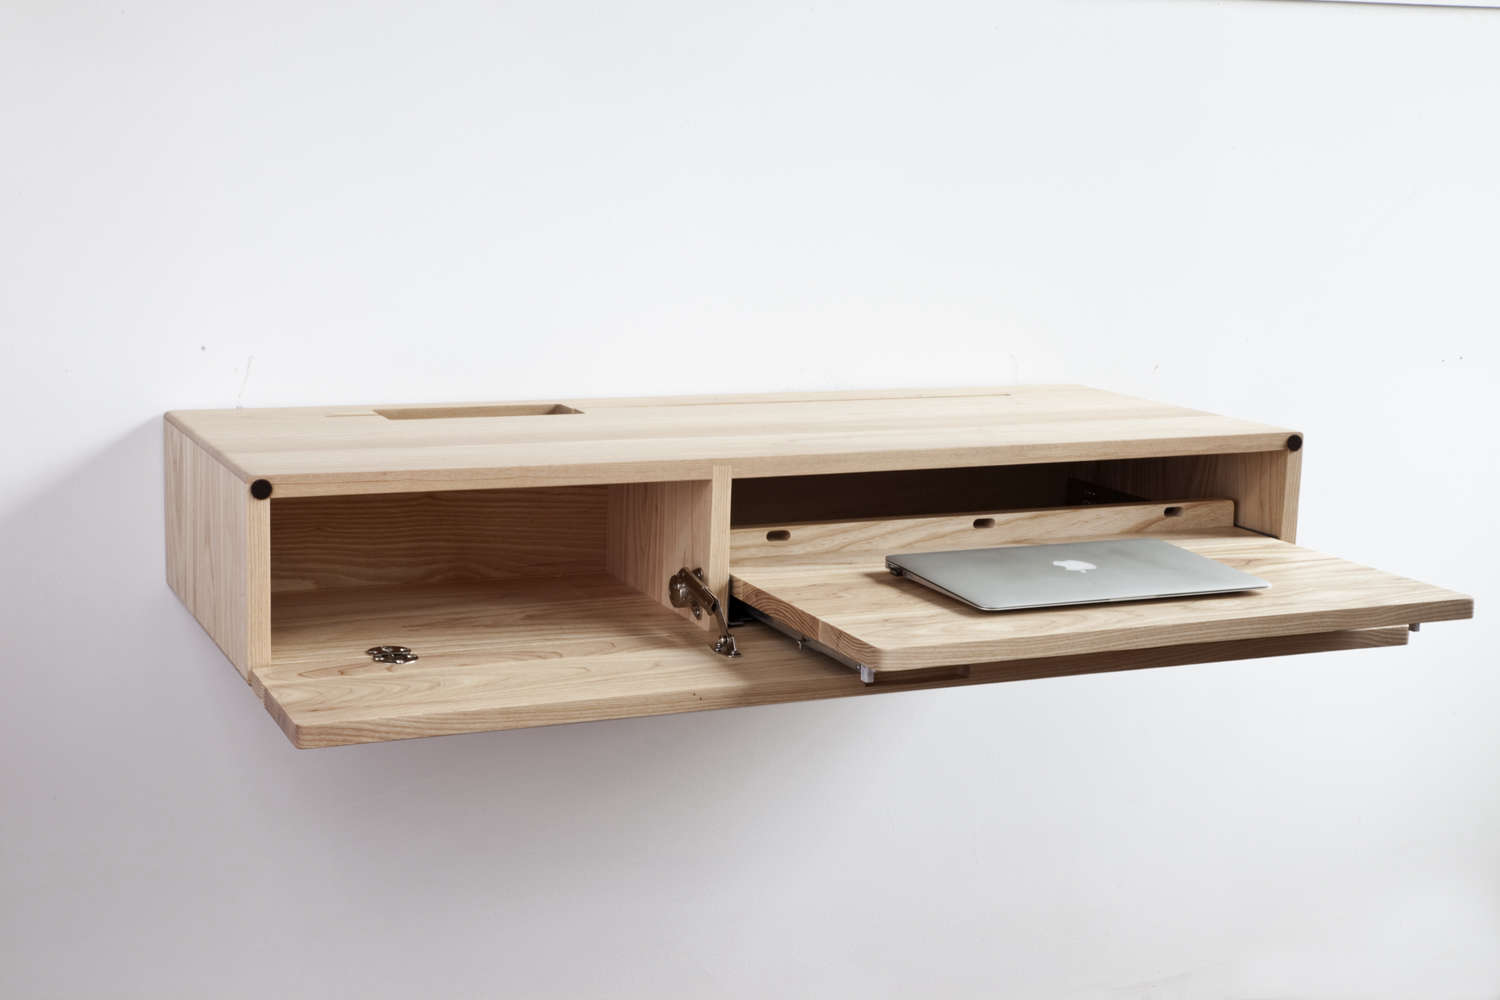 The Ledge Wall-Mounted Desk in ash, beech, or walnut is $loading=